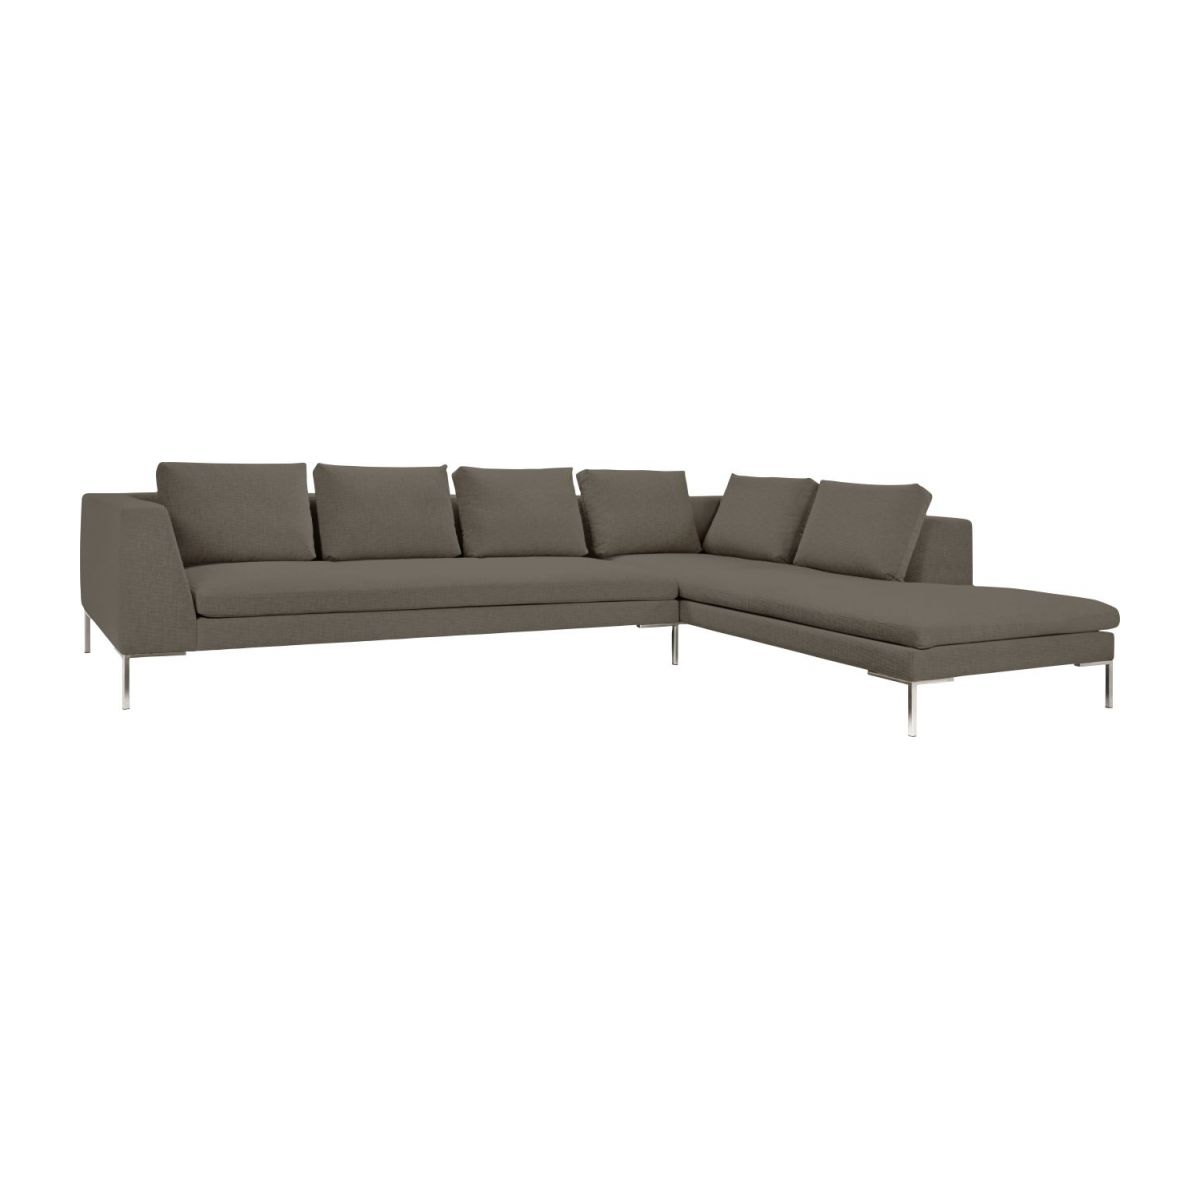 3 Seater Sofa With Chaise Longue On The Right In Ancio Fabric River Rock N